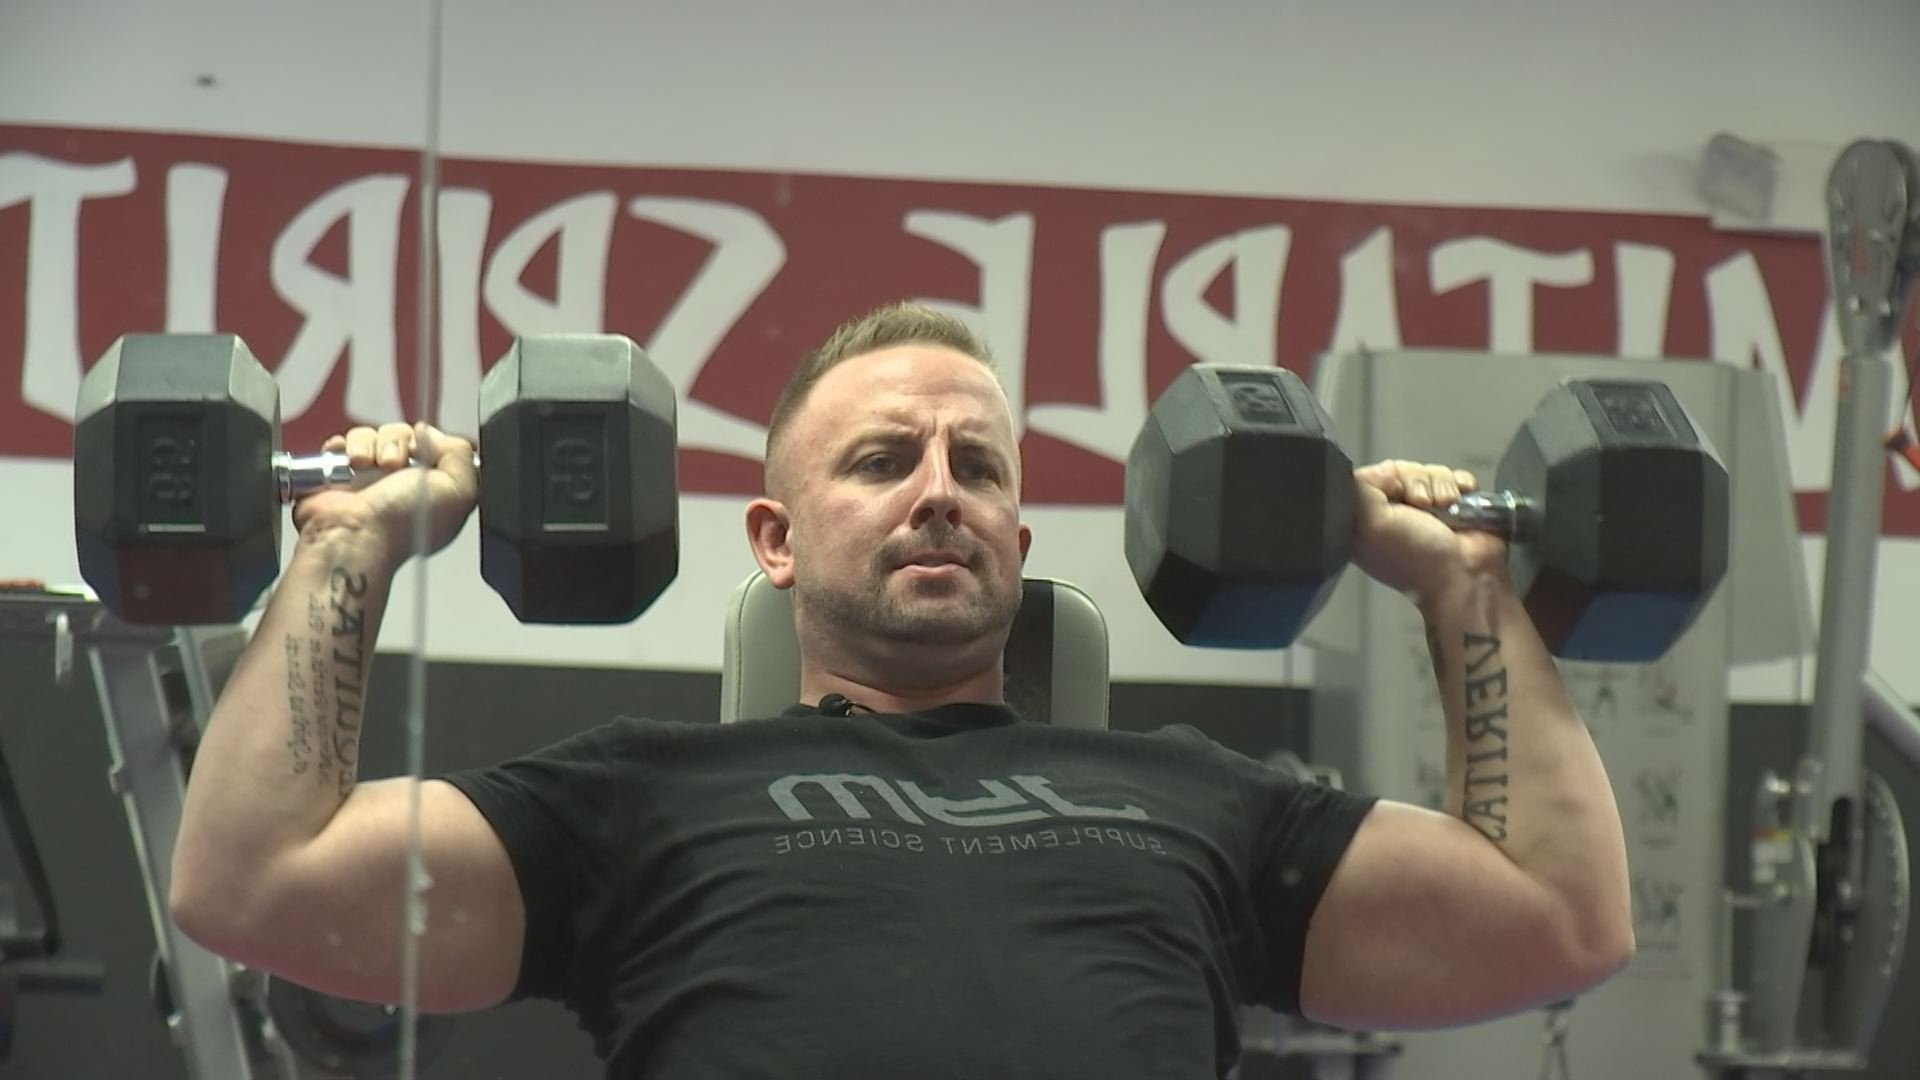 Dan Otterson will try to finish a grueling national fitness challenge in honor of his son.